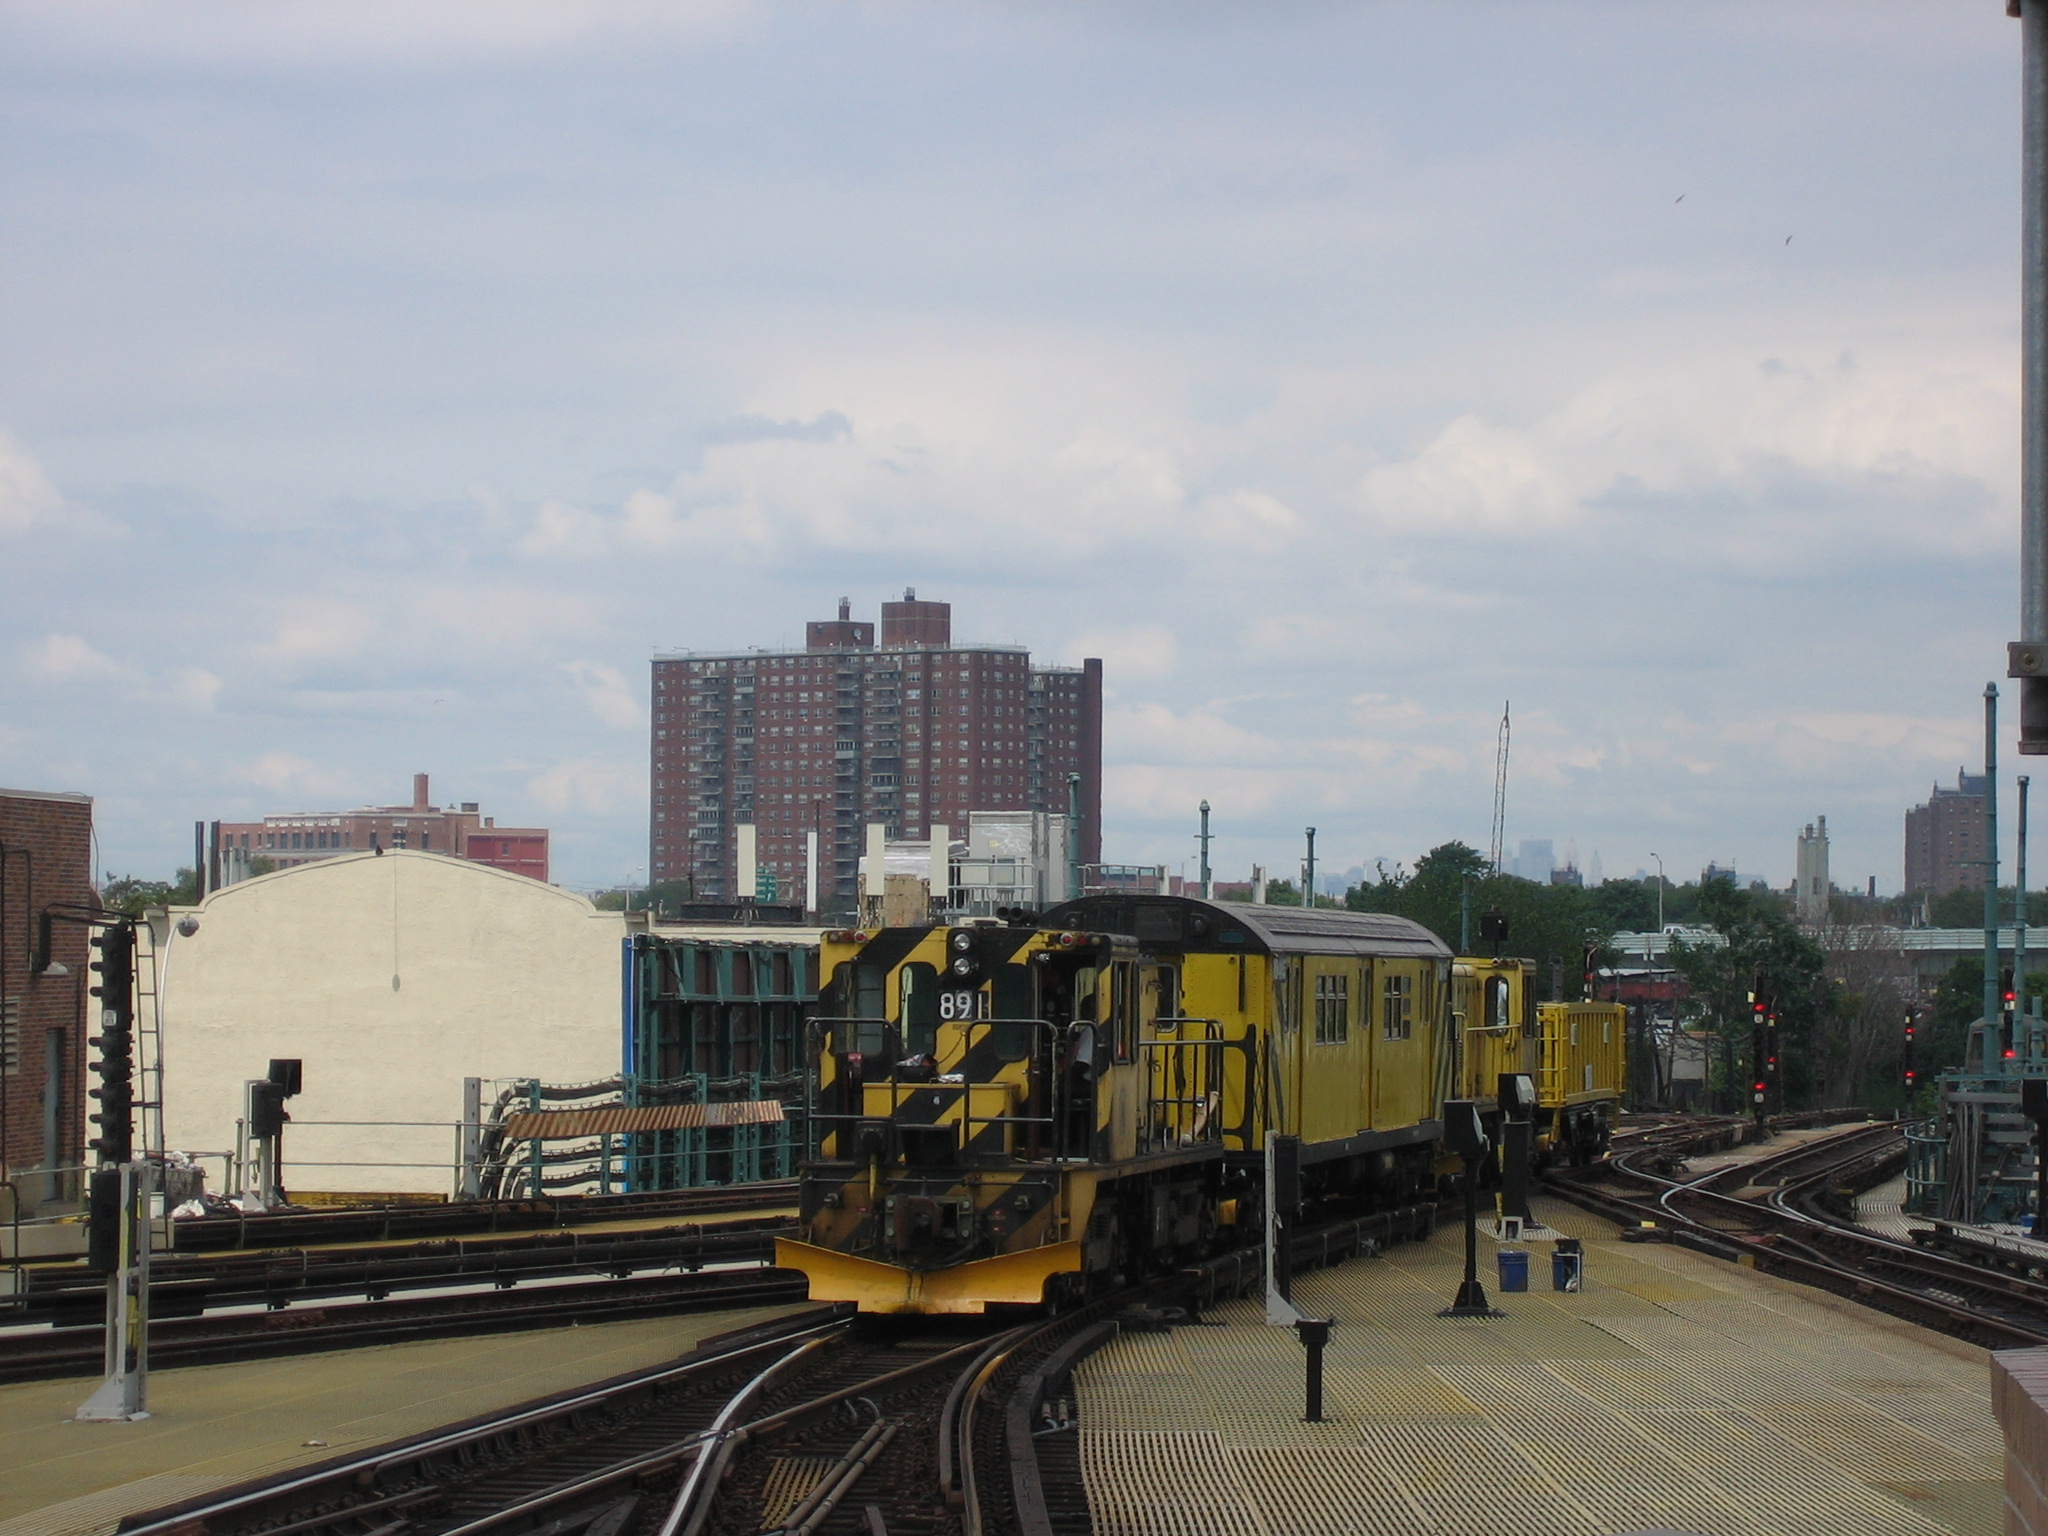 (746k, 2048x1536)<br><b>Country:</b> United States<br><b>City:</b> New York<br><b>System:</b> New York City Transit<br><b>Location:</b> Coney Island/Stillwell Avenue<br><b>Route:</b> Work Service<br><b>Car:</b> R-77 Locomotive  891 <br><b>Photo by:</b> Michael Hodurski<br><b>Date:</b> 8/4/2006<br><b>Viewed (this week/total):</b> 1 / 1113